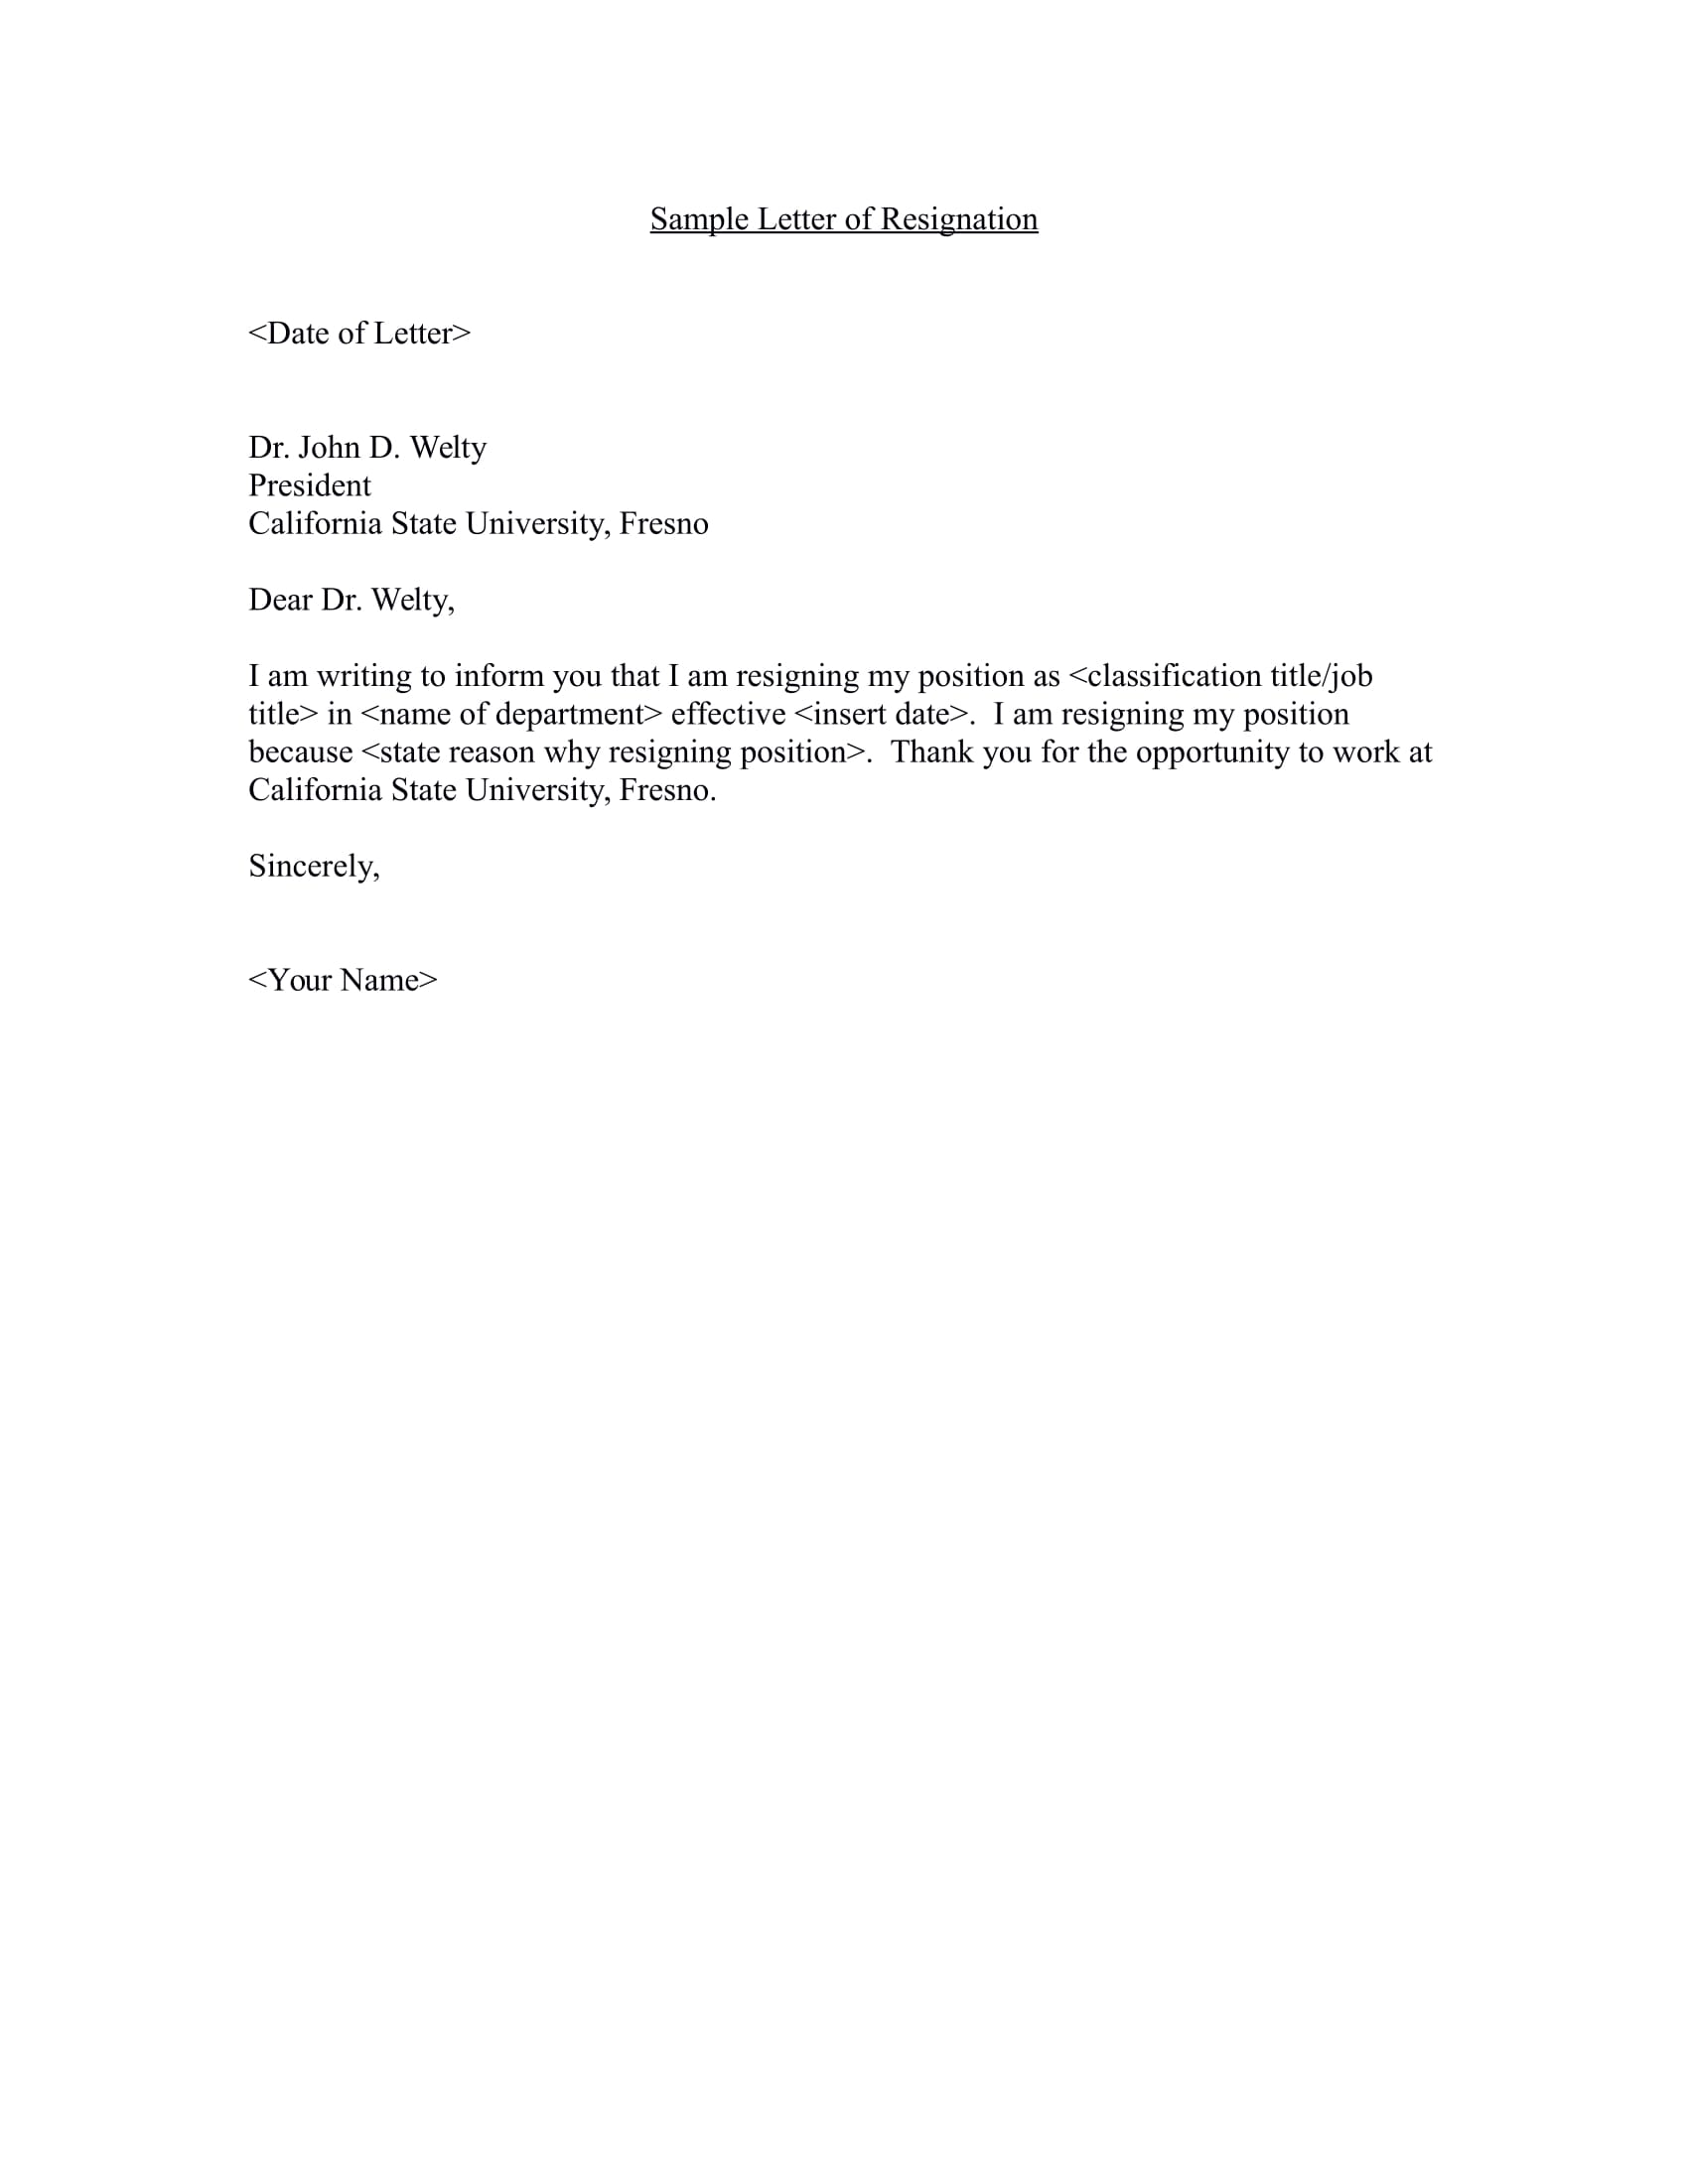 university faculty resignation letter example